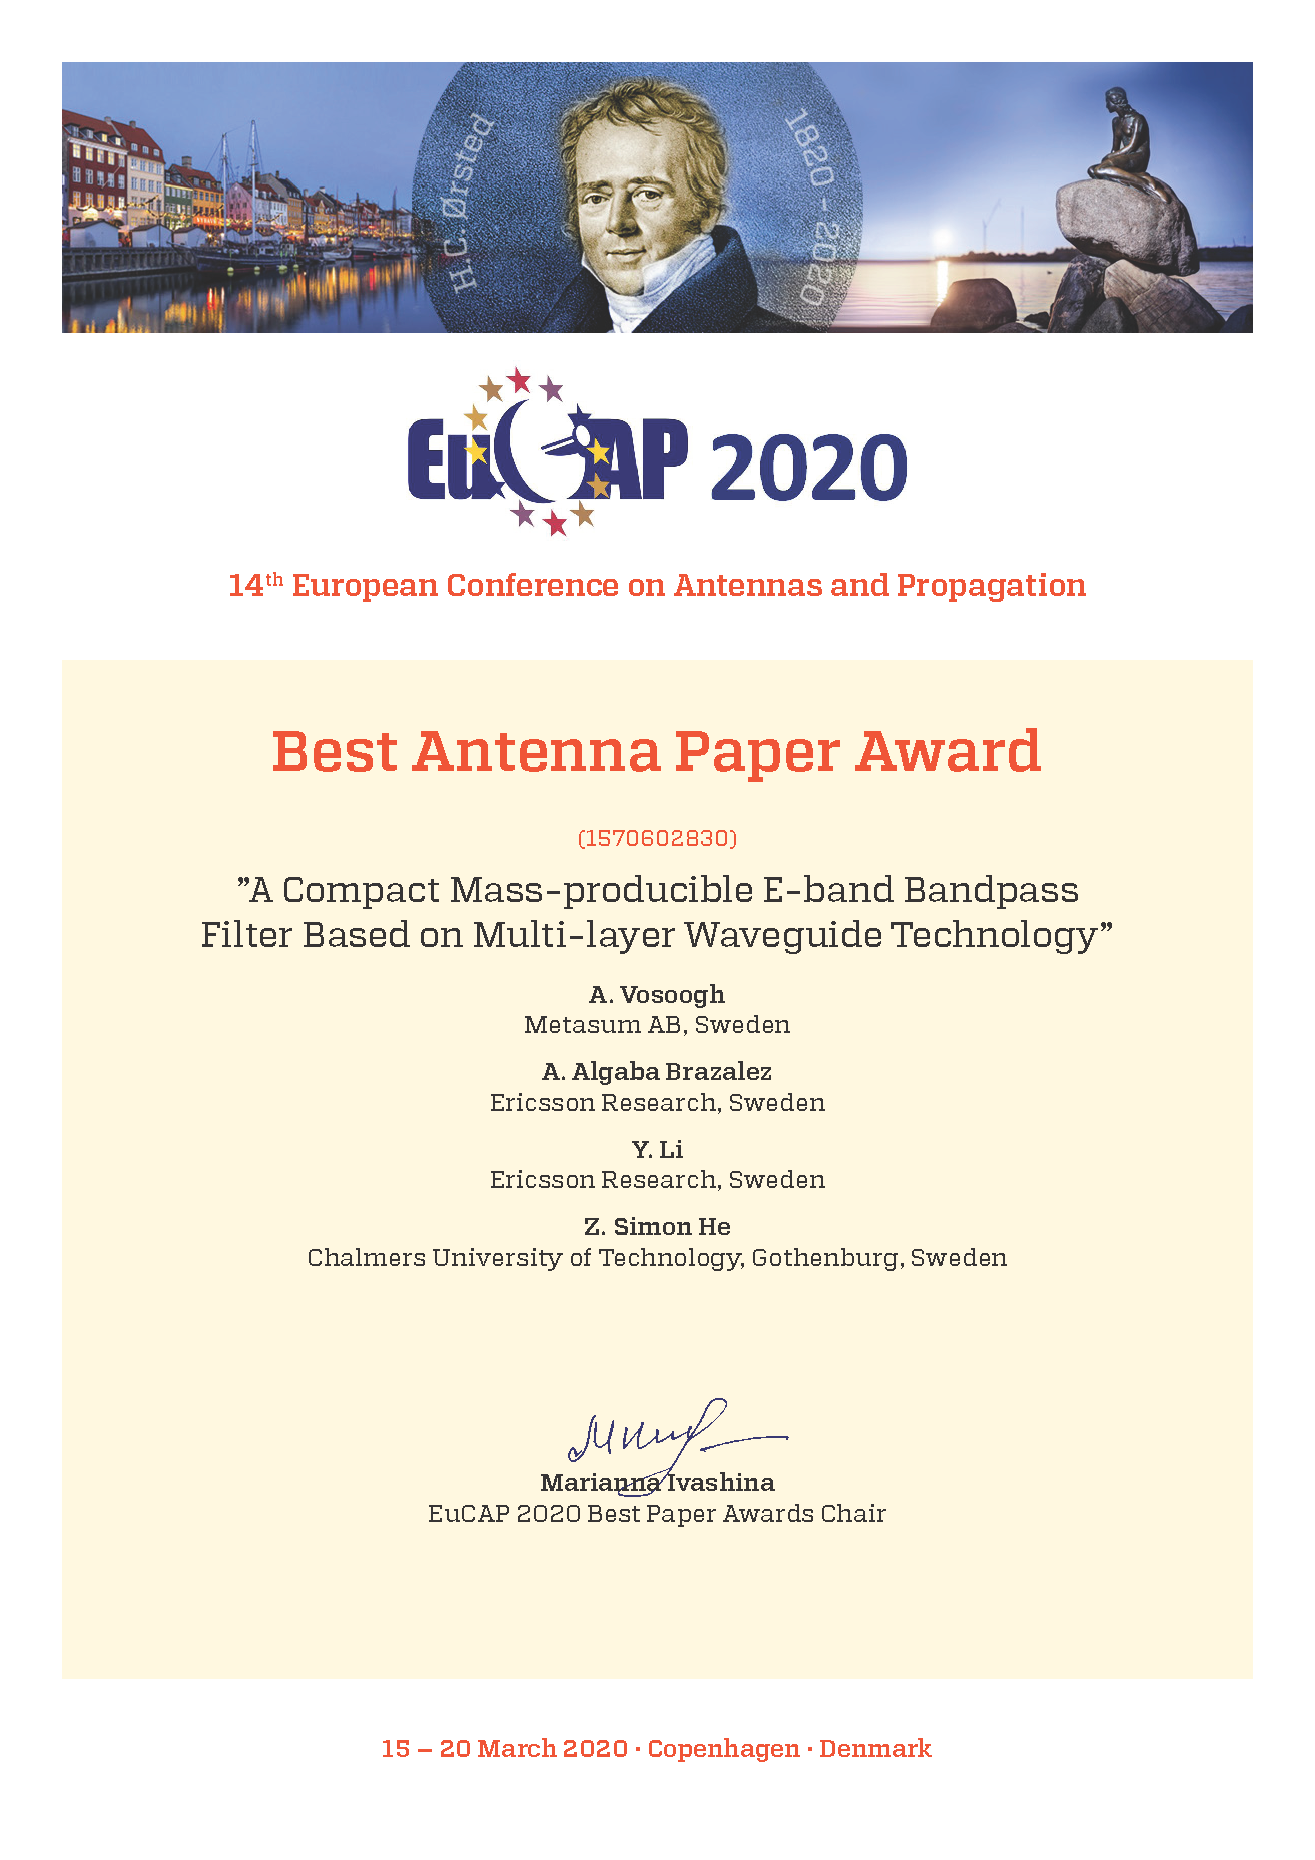 Best paper award Antennas